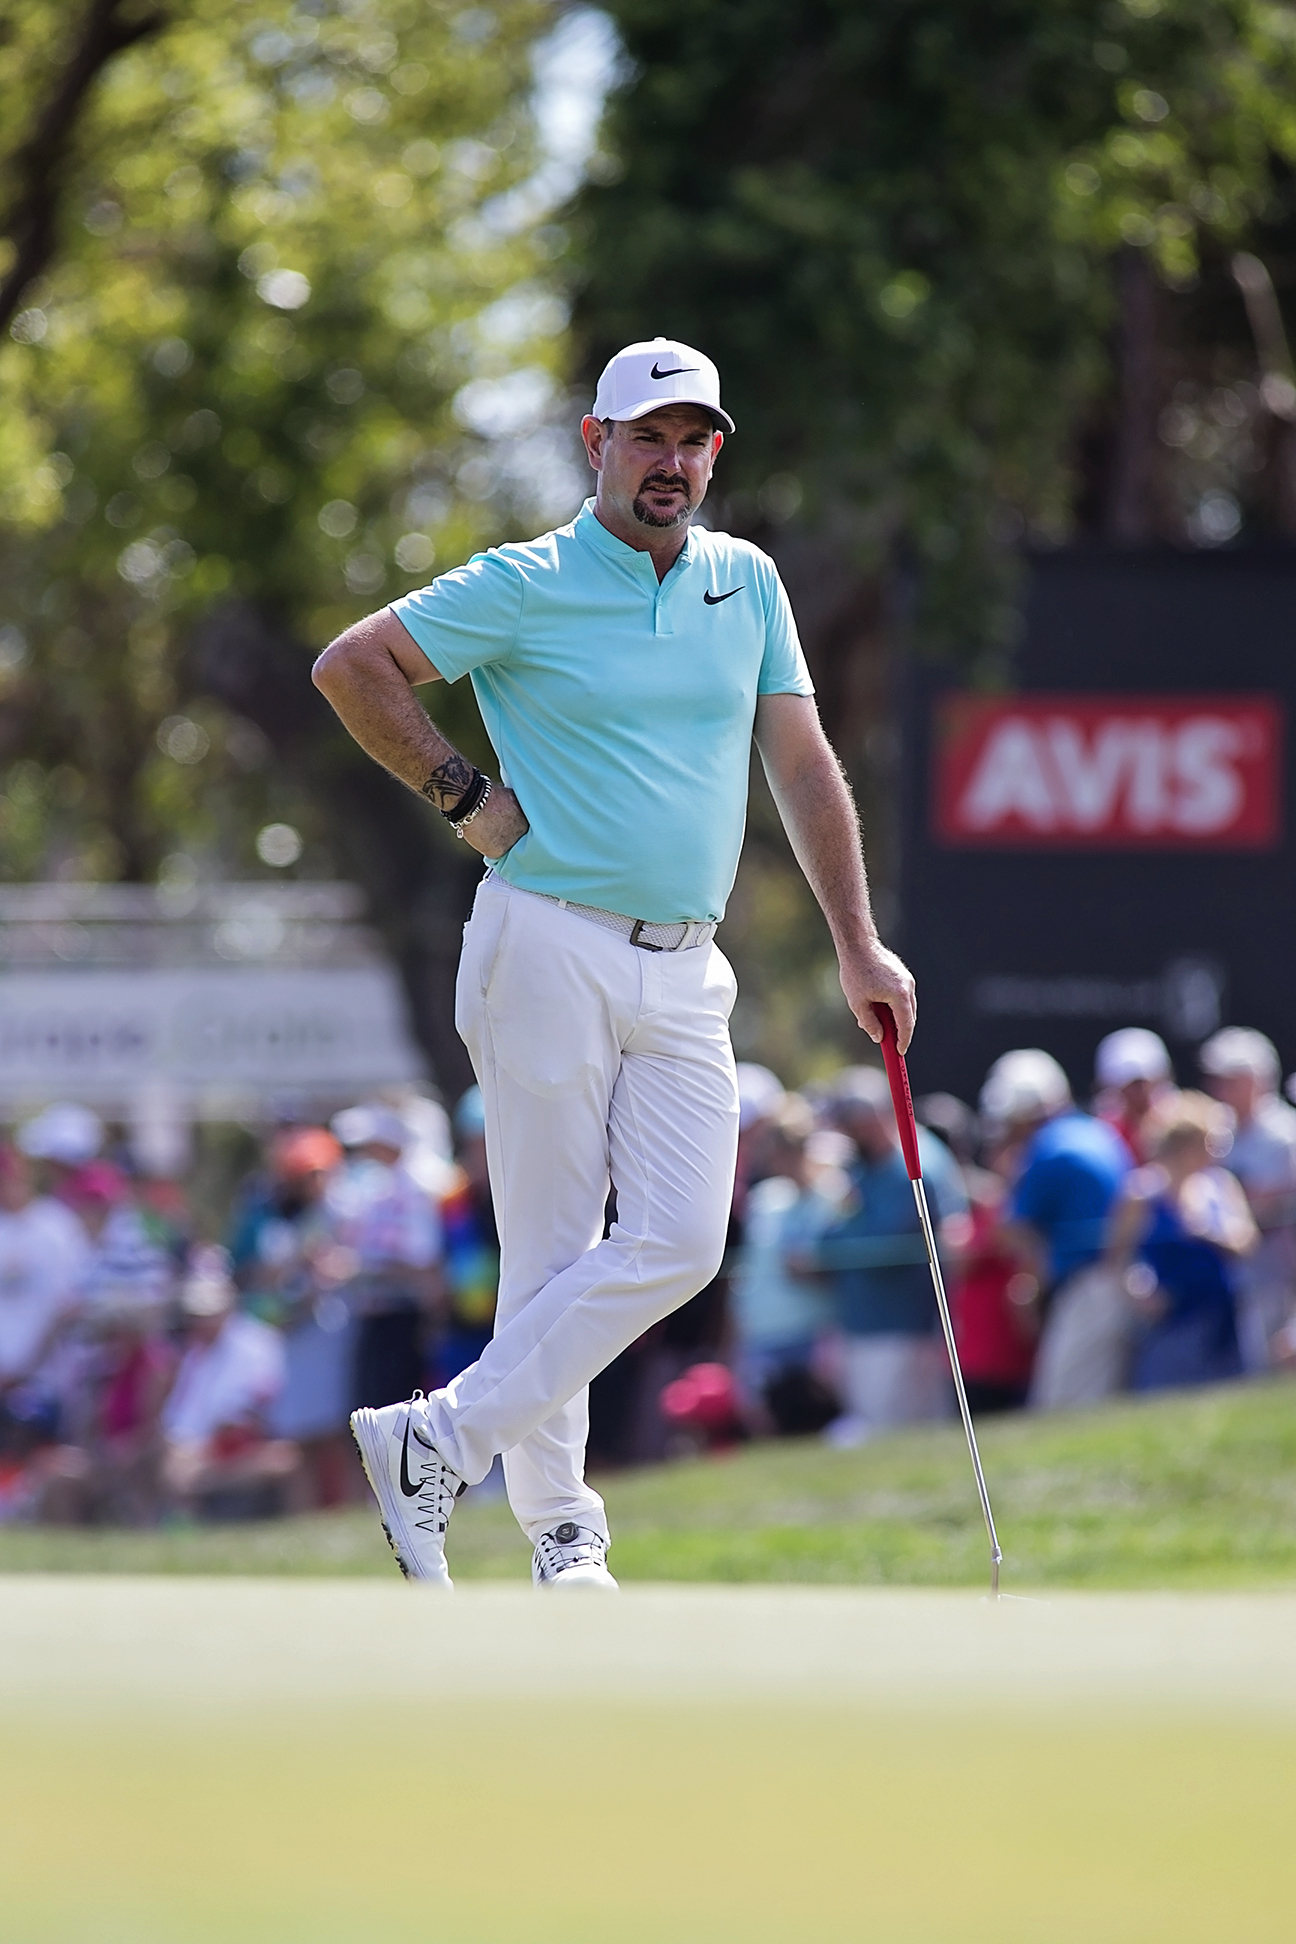 Rory Sabbatini finished in a tie for fifth./CARMEN MANDATO